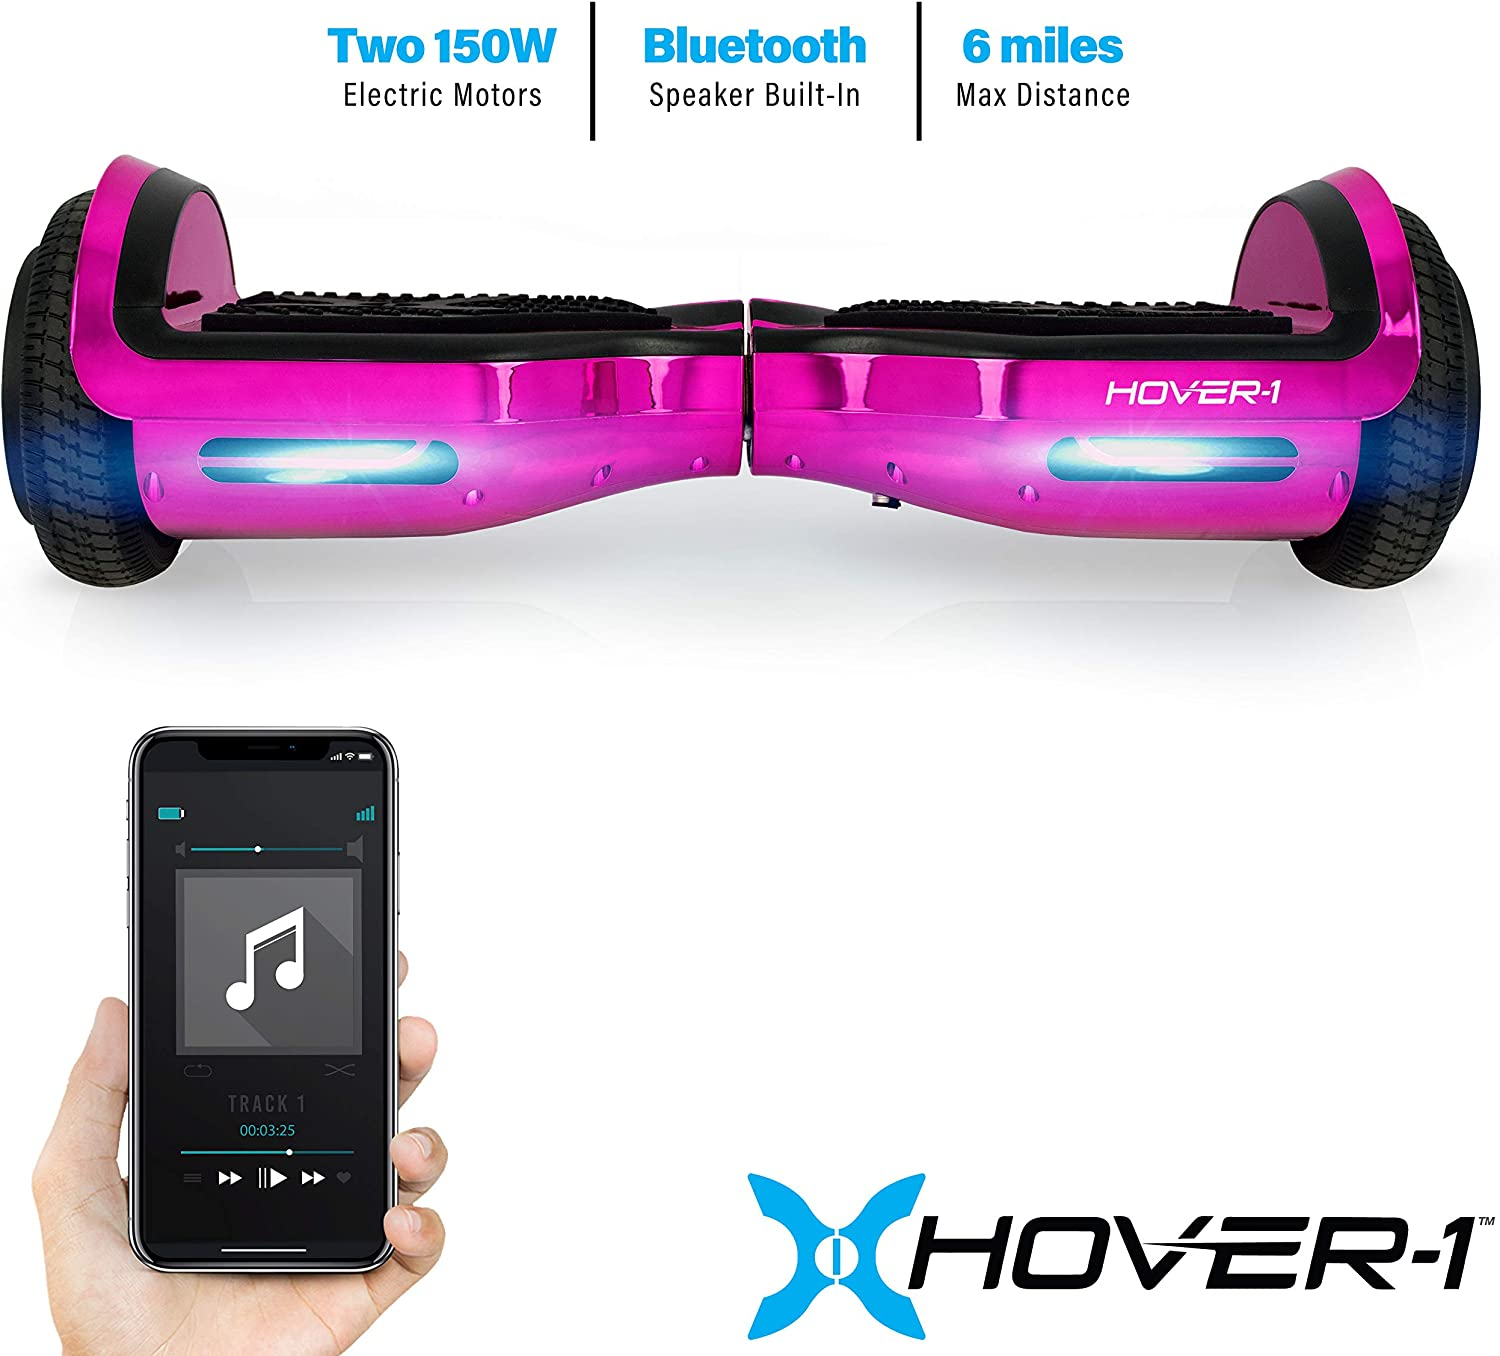 Hover-1 Chrome Electric Hoverboard Scooter Pink - 1